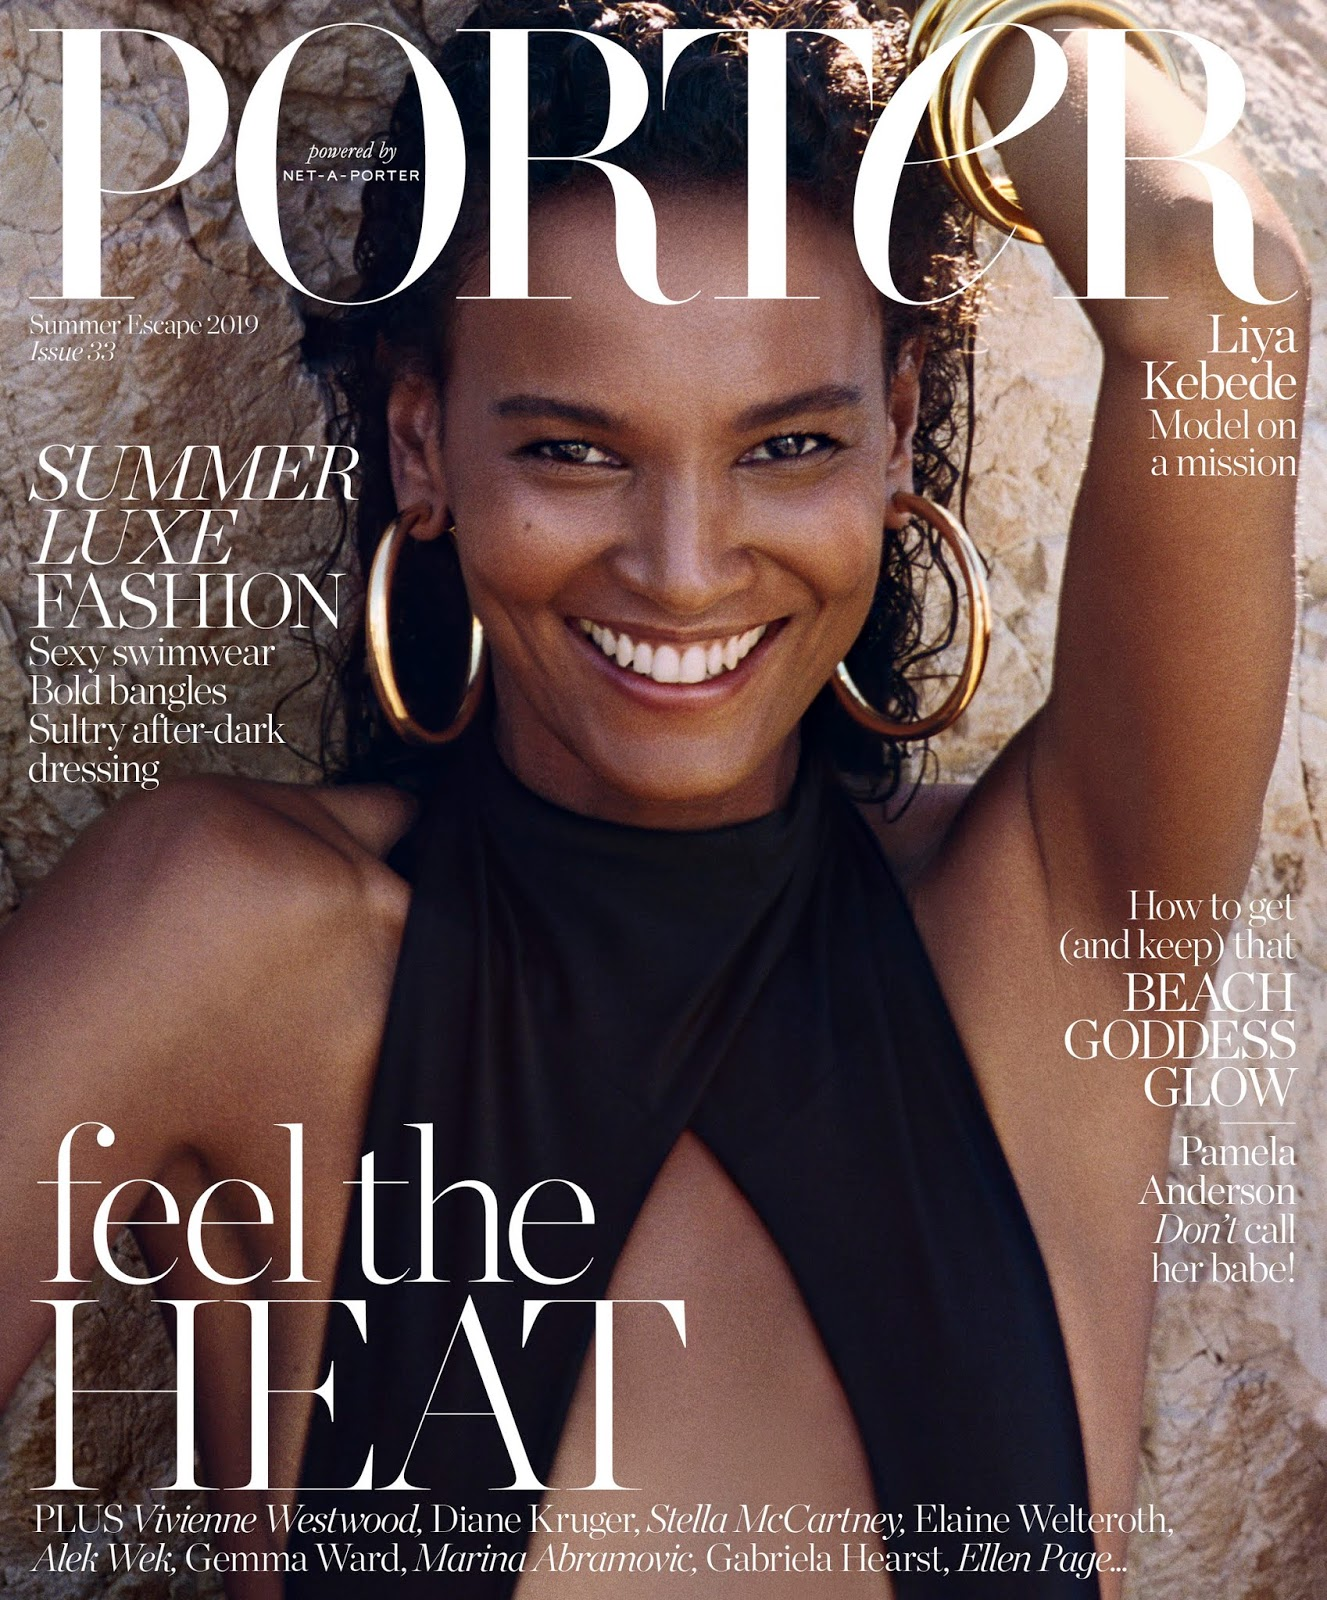 Liya Kebede by Cass Bird for Porter Magazine 33 (3).jpg